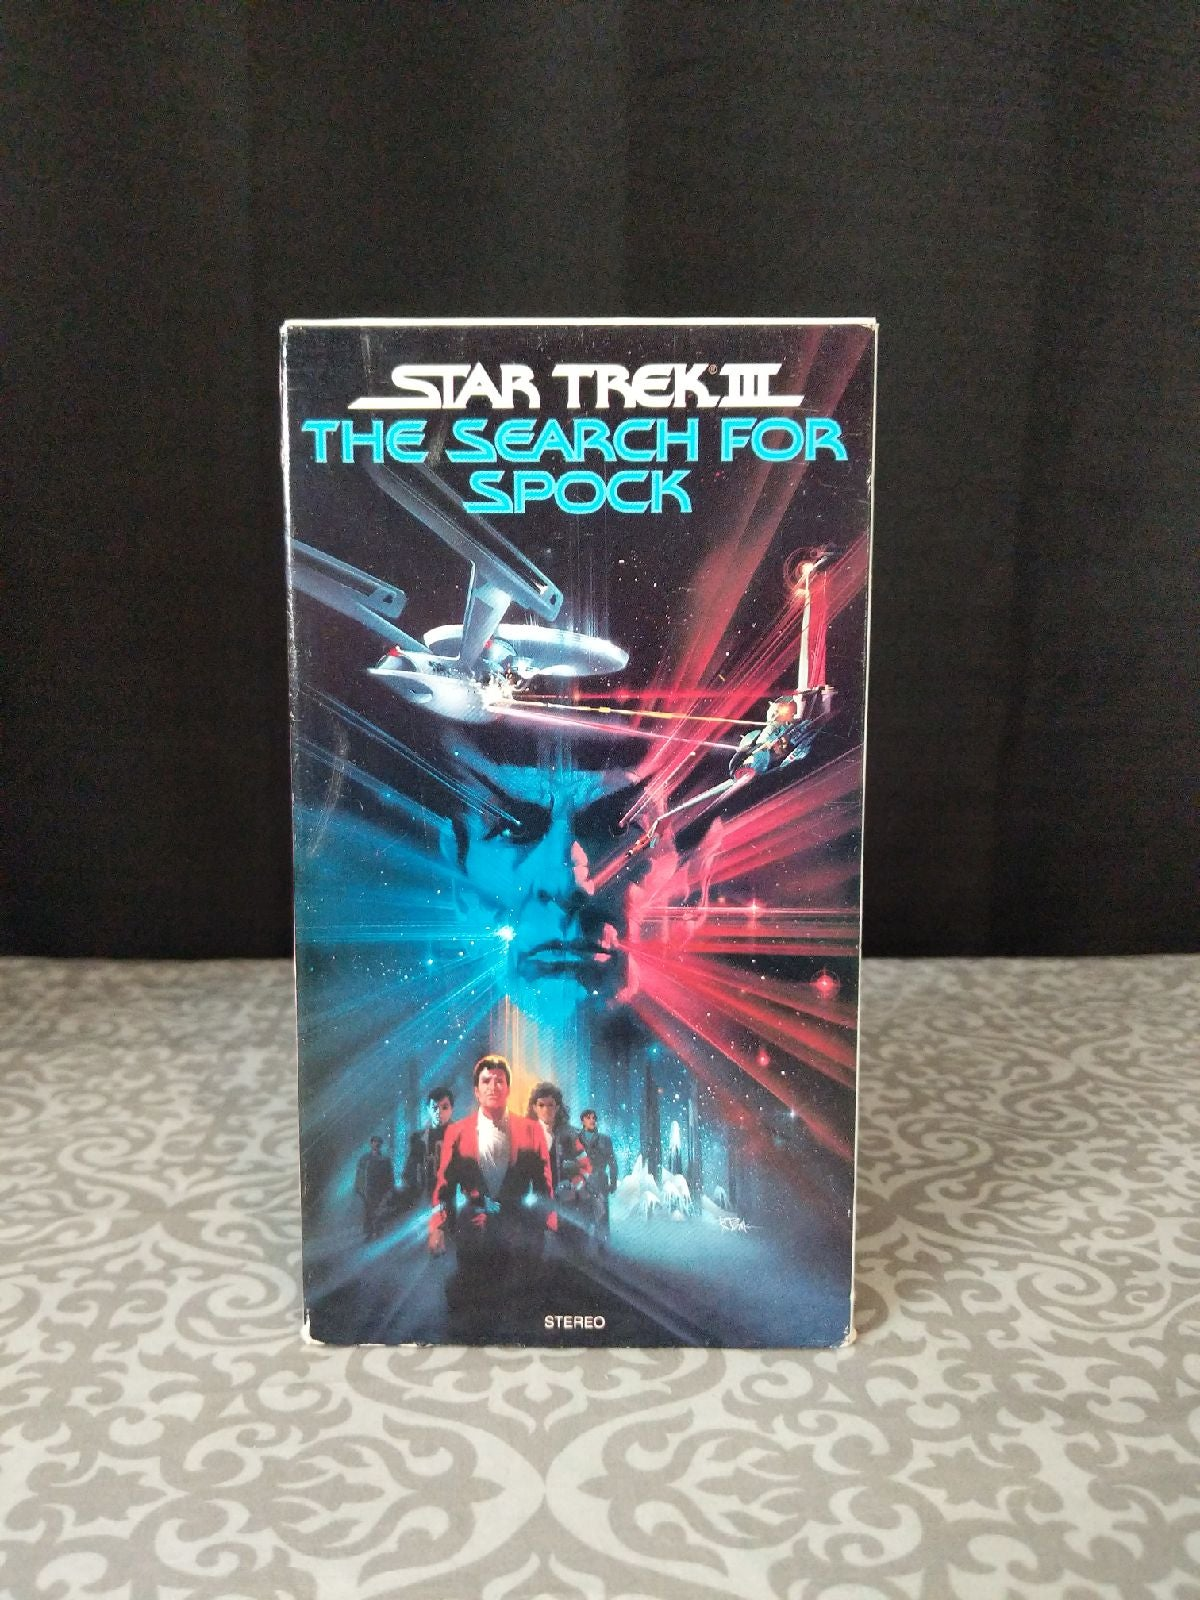 Star Trek III: The Search for Spock VHS